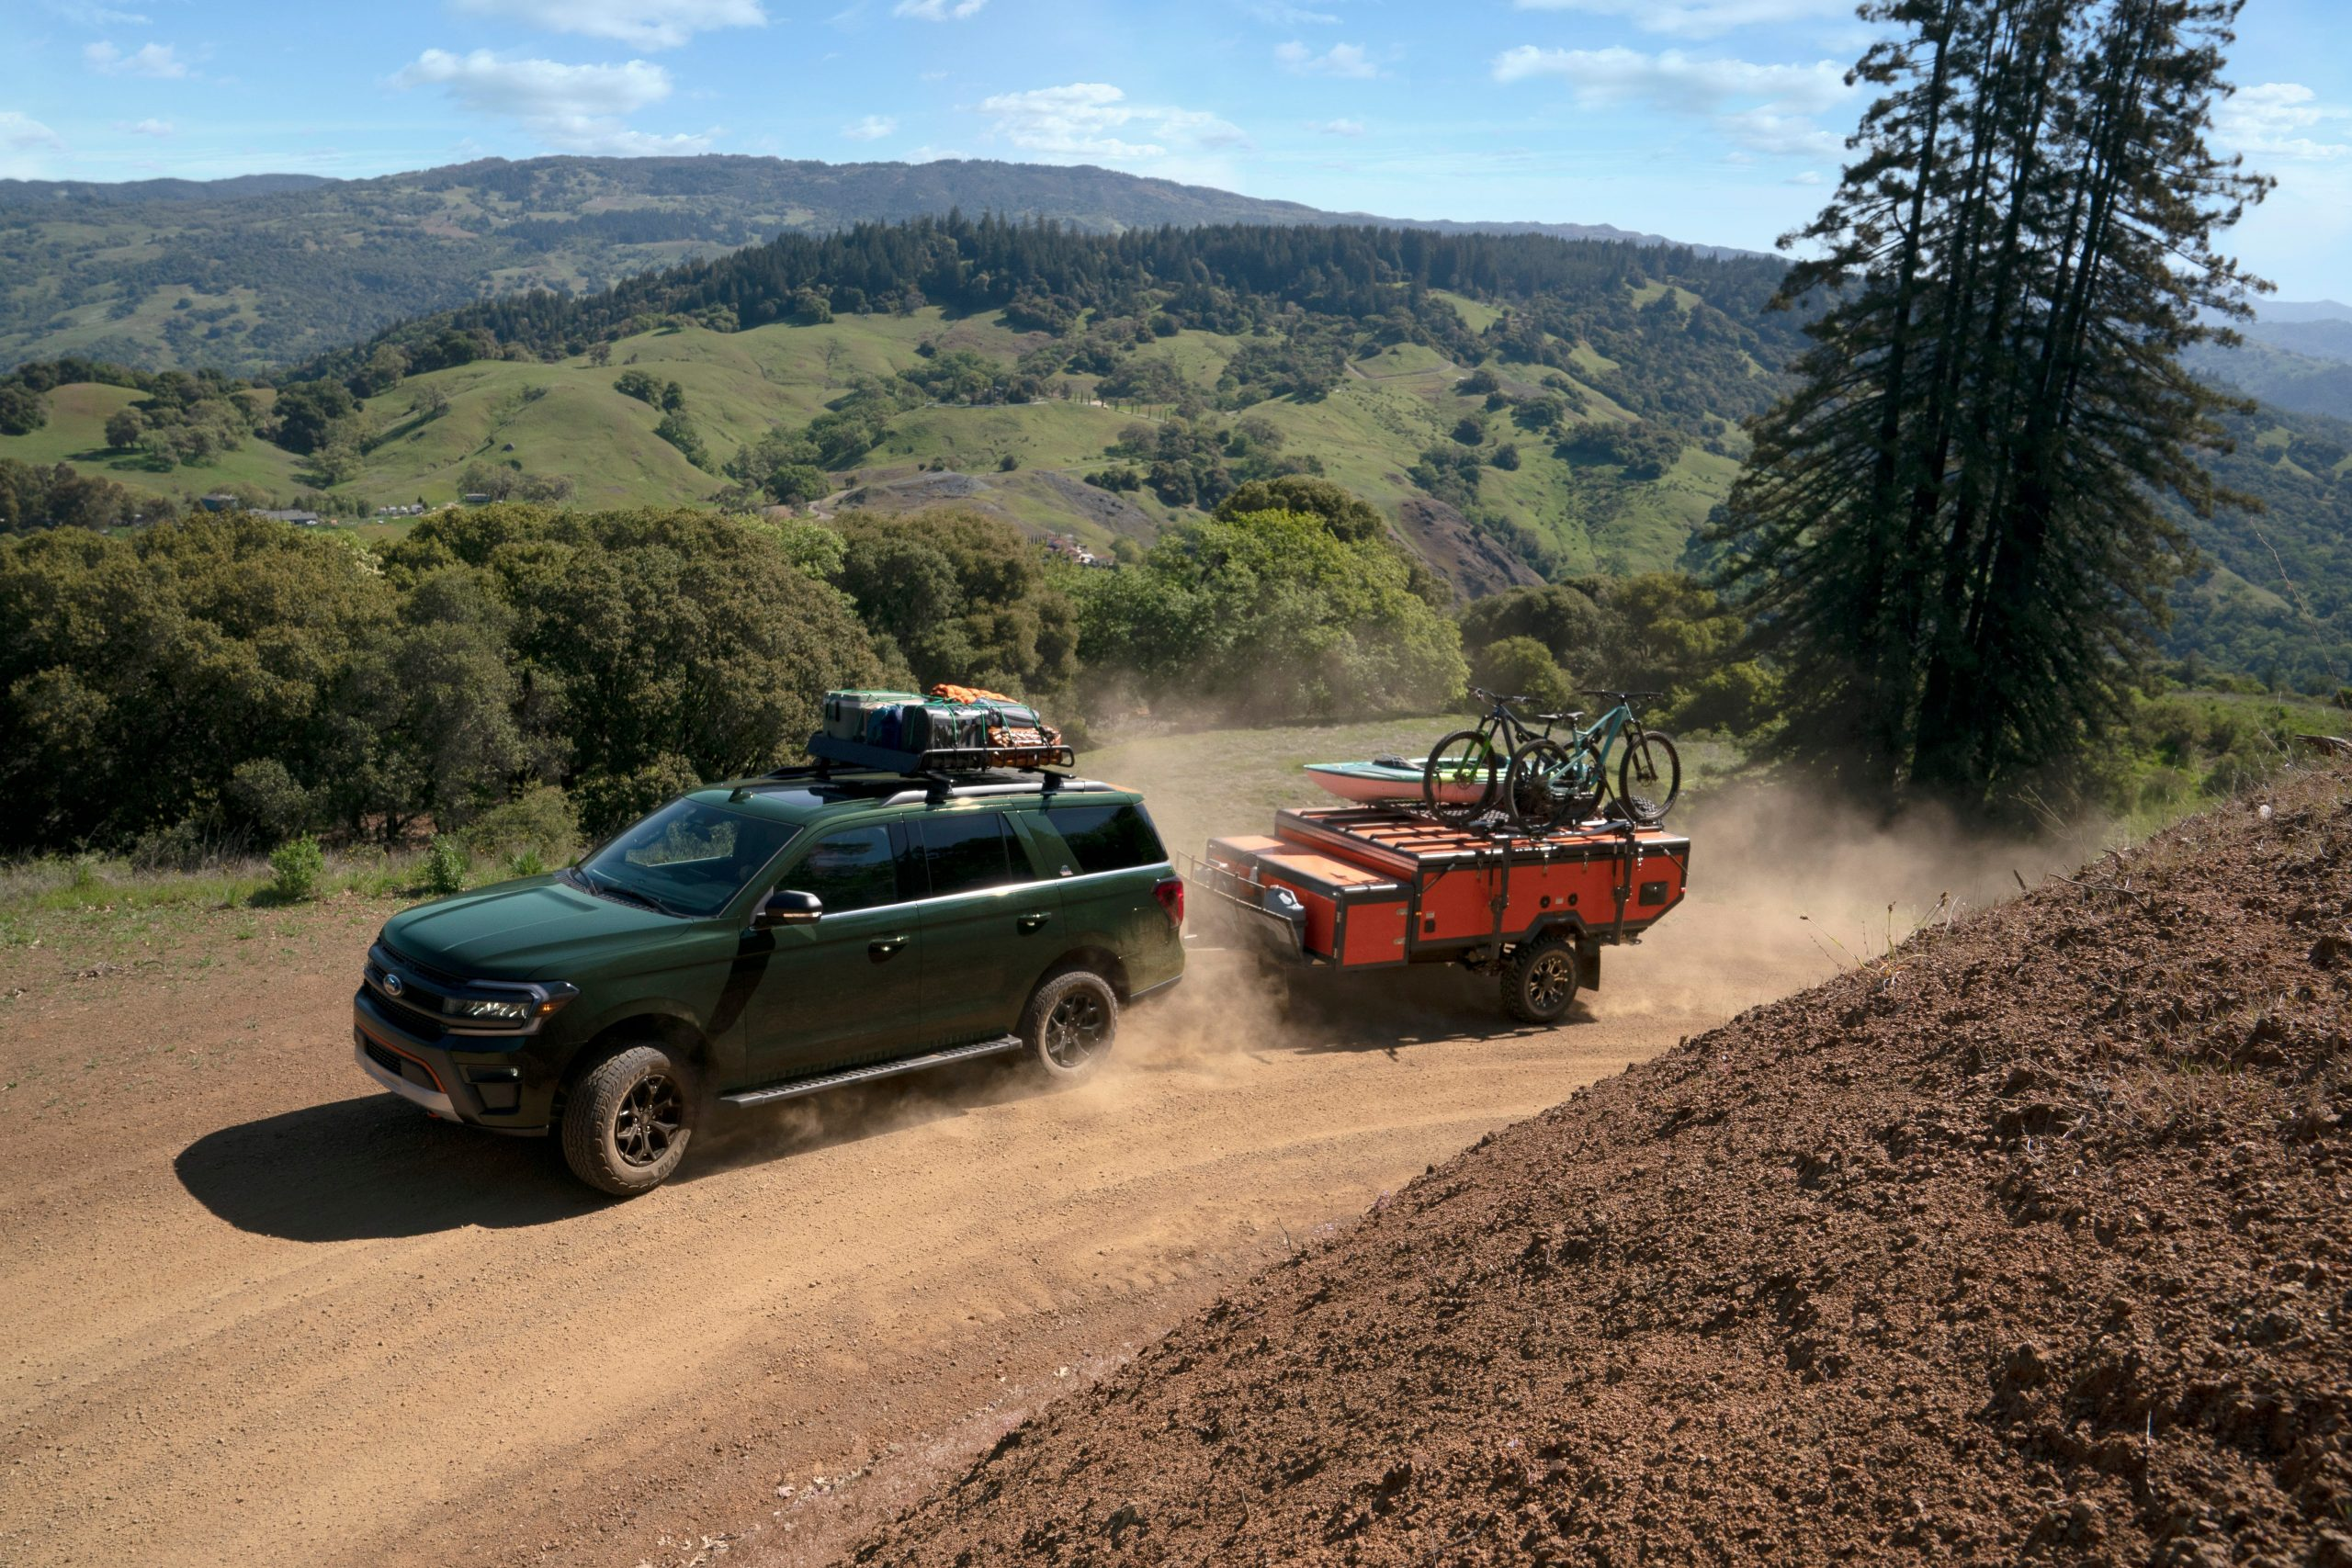 Ford, other car manufacturers are ready to compete with Jeep's off-road offerings